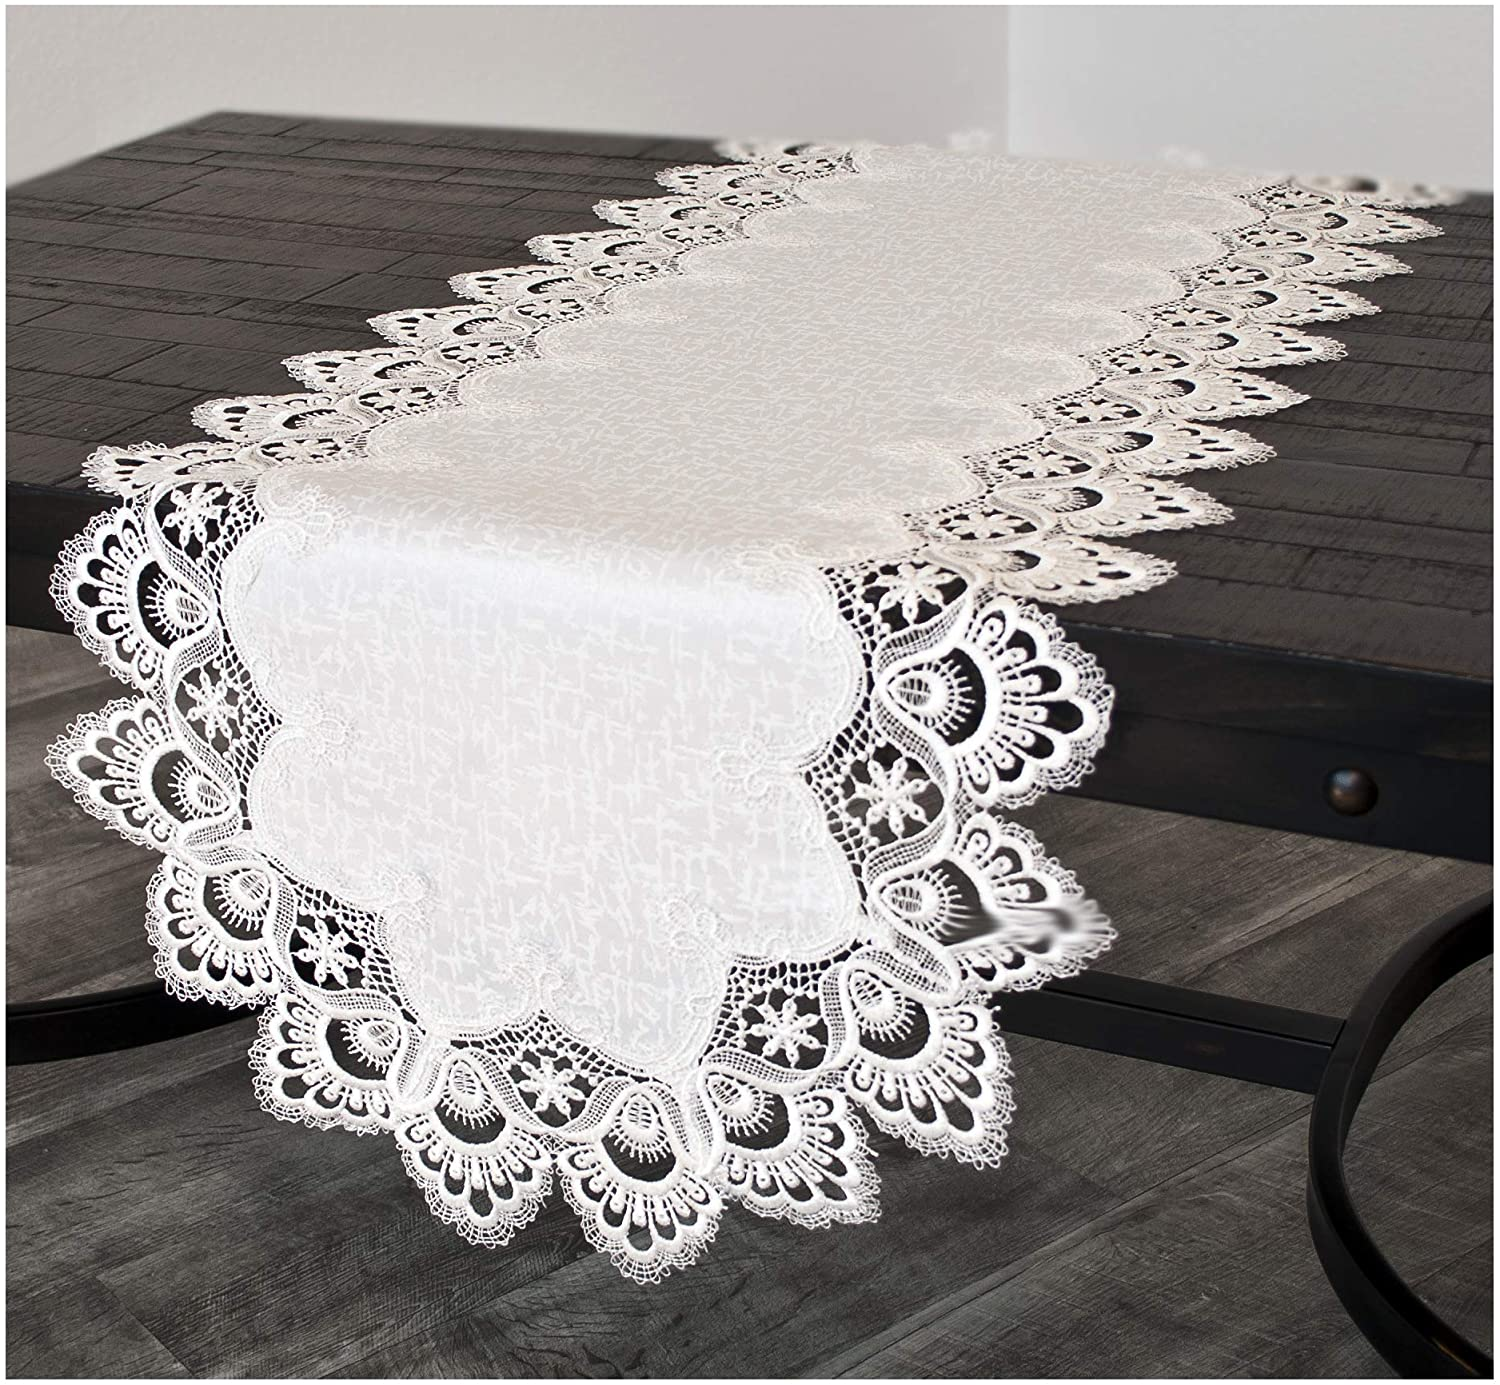 Linens, Art and Things White Jacquard Peacock Tail Lace Dresser Scarf Table Runner Coffee Table Runner, Weddings 16 x 35 Inch Approx